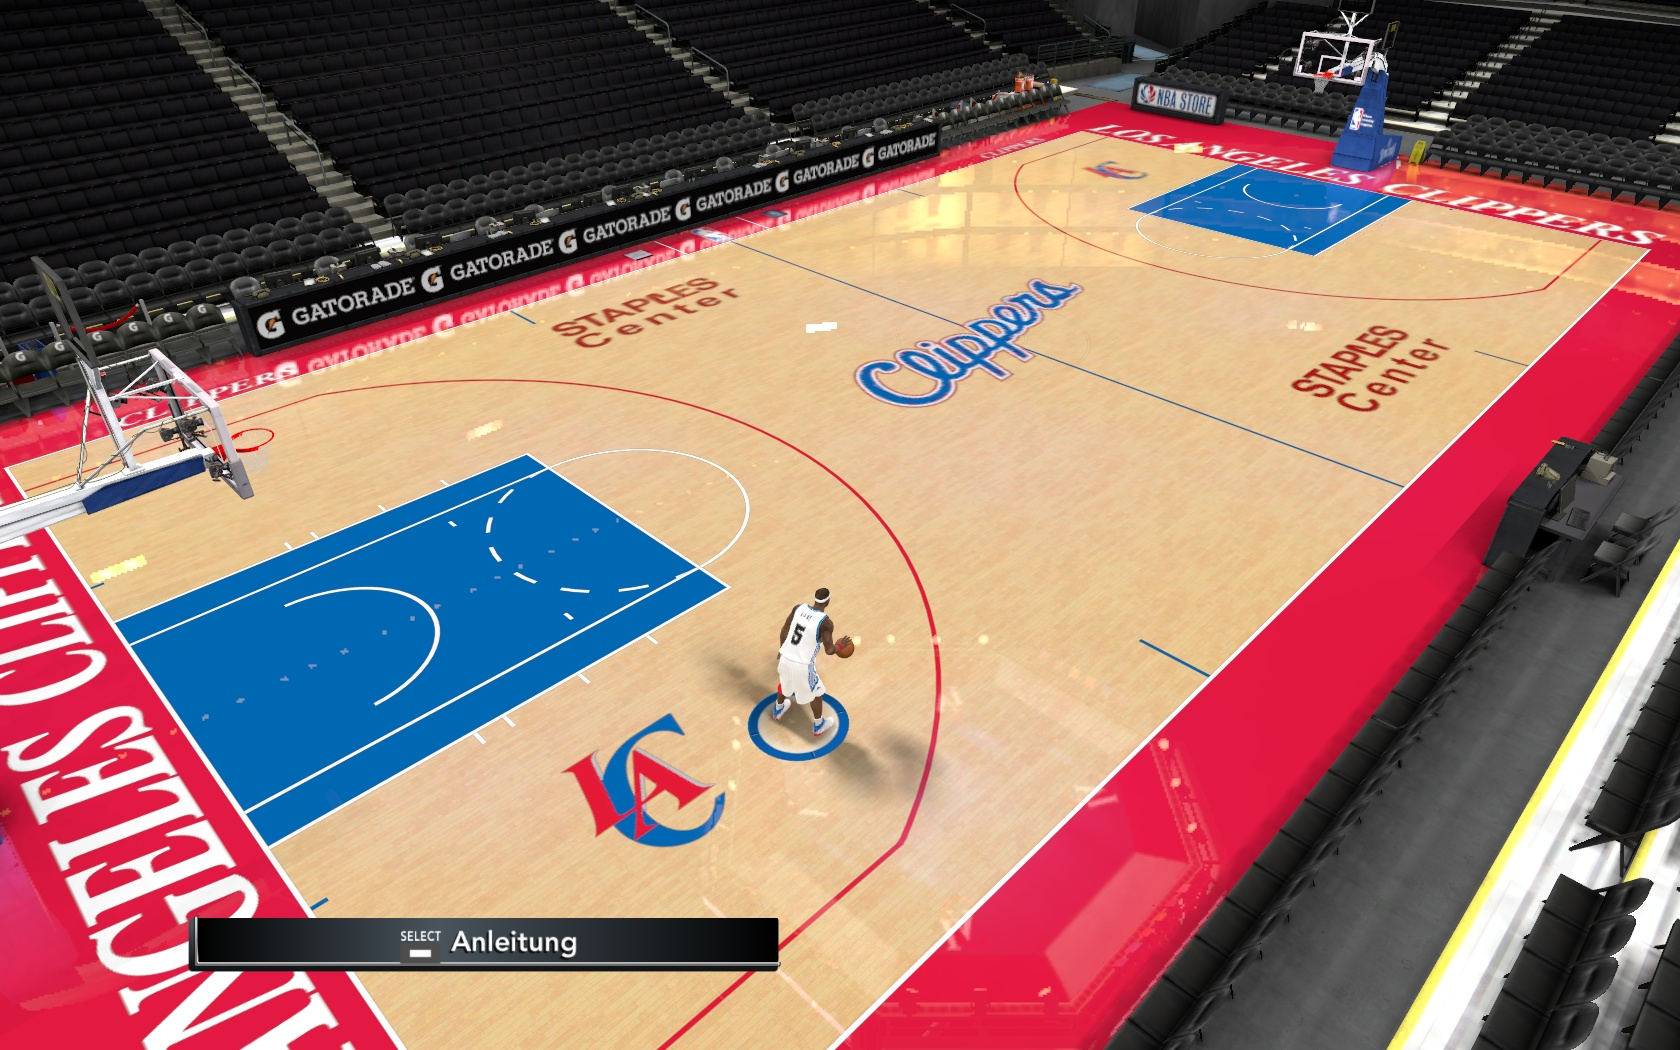 Kaaba's All 30 NBA Team Courts Patches V1.0 for NBA 2K11